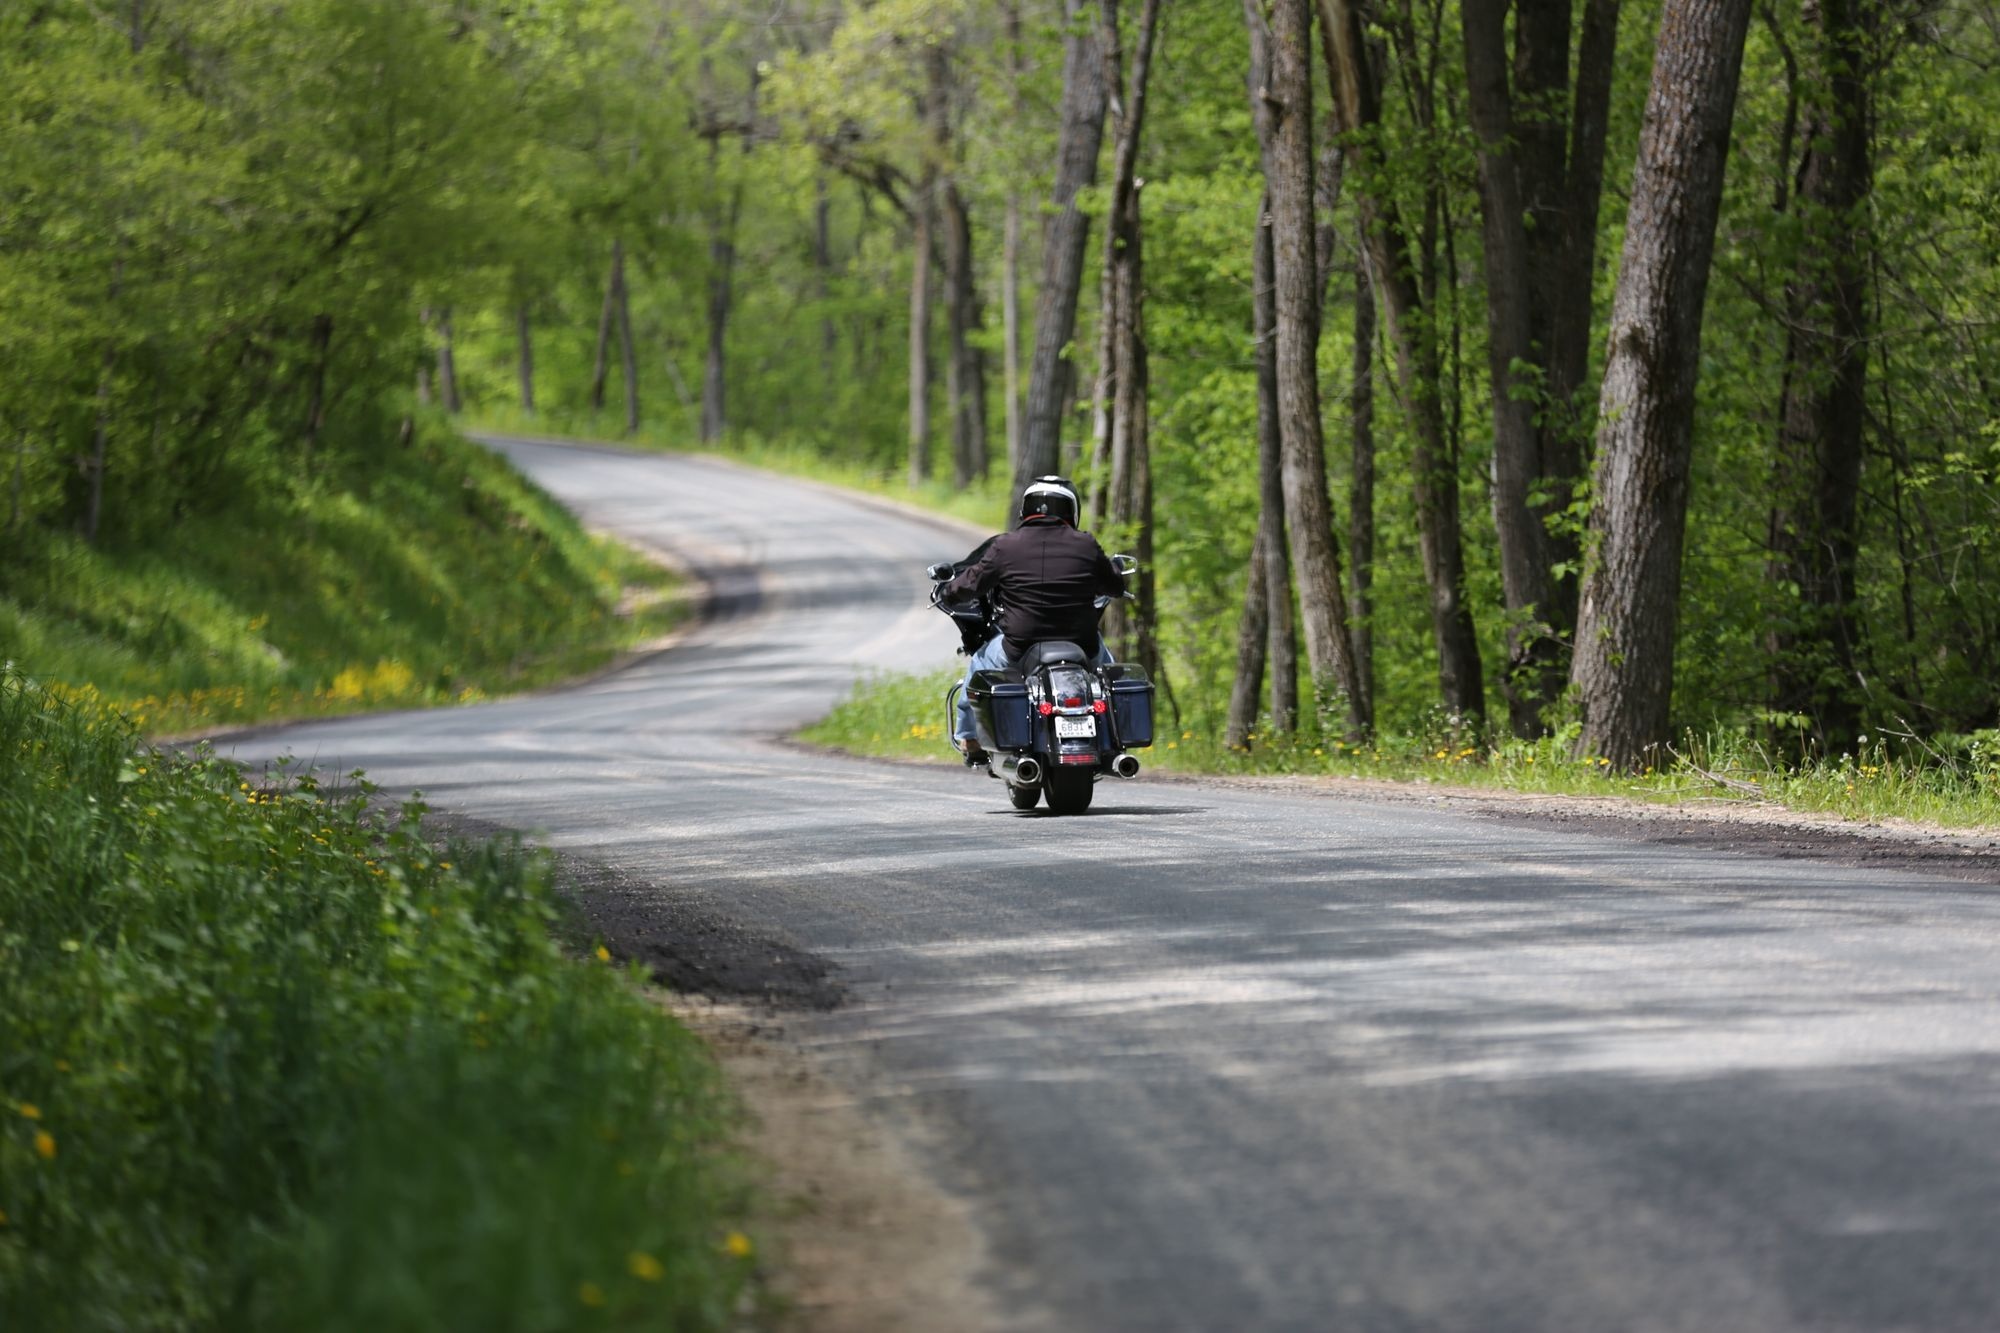 6 Things Every Motorcyclist Should Do in 2019